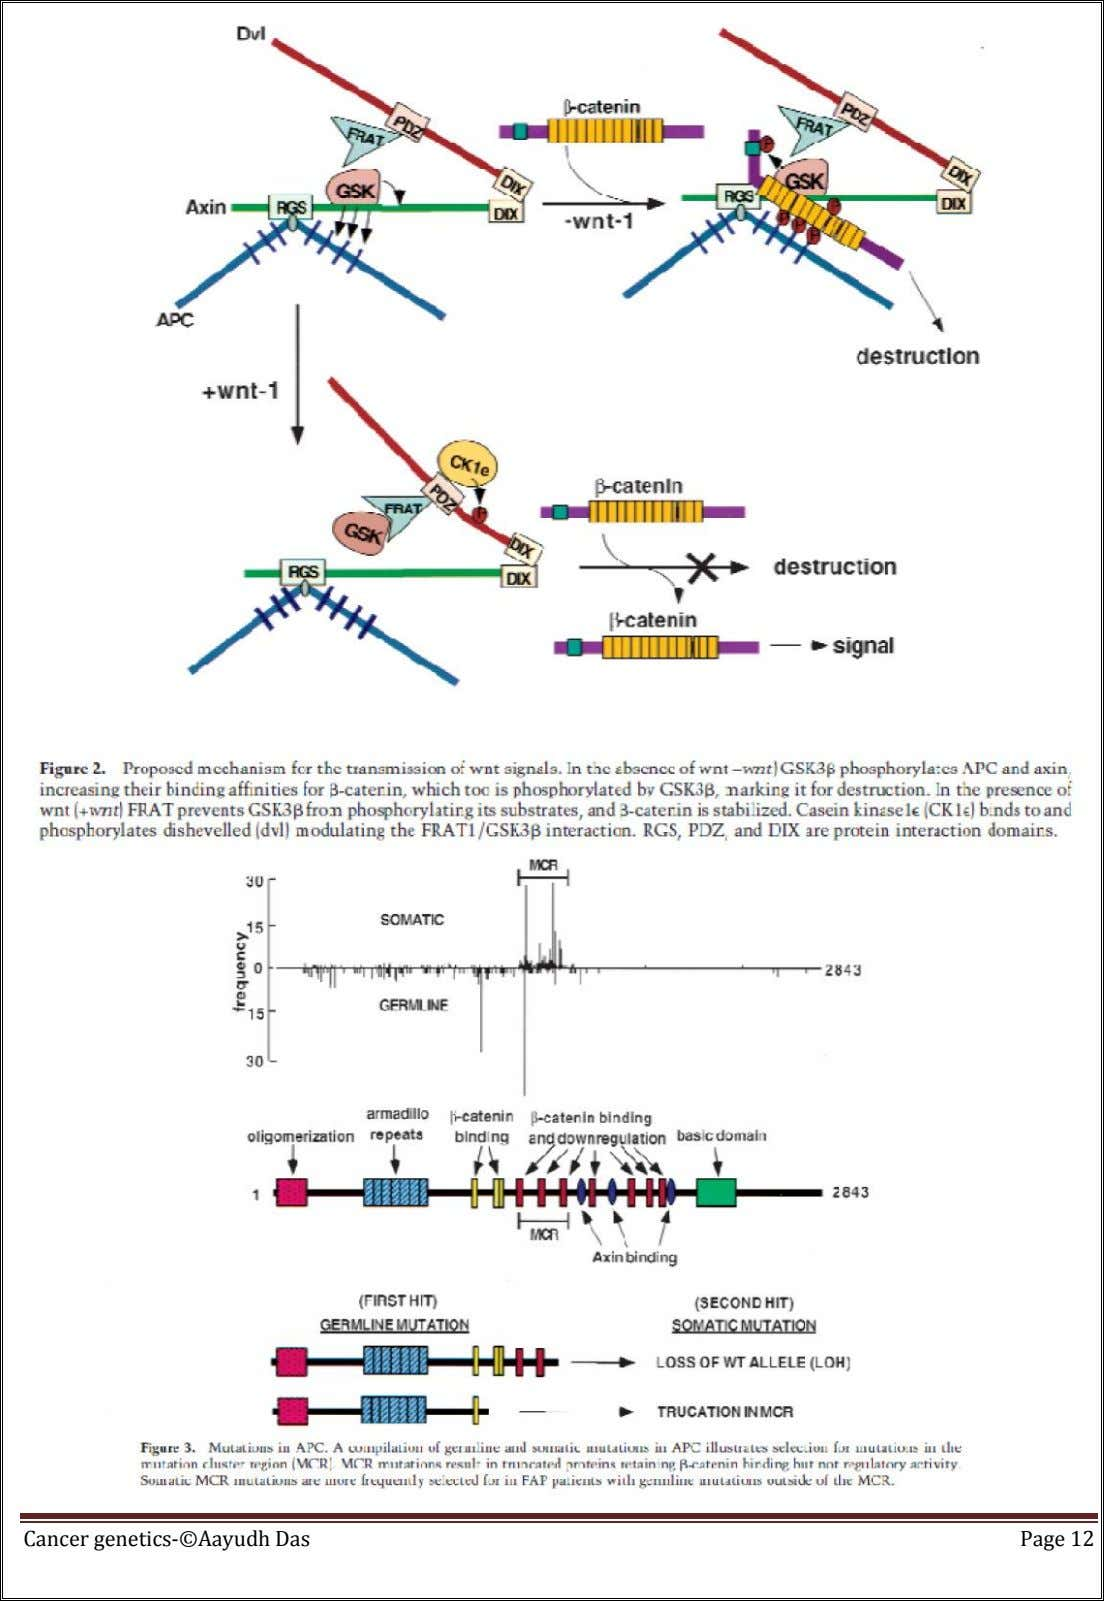 Cancer genetics-©Aayudh Das Page 12